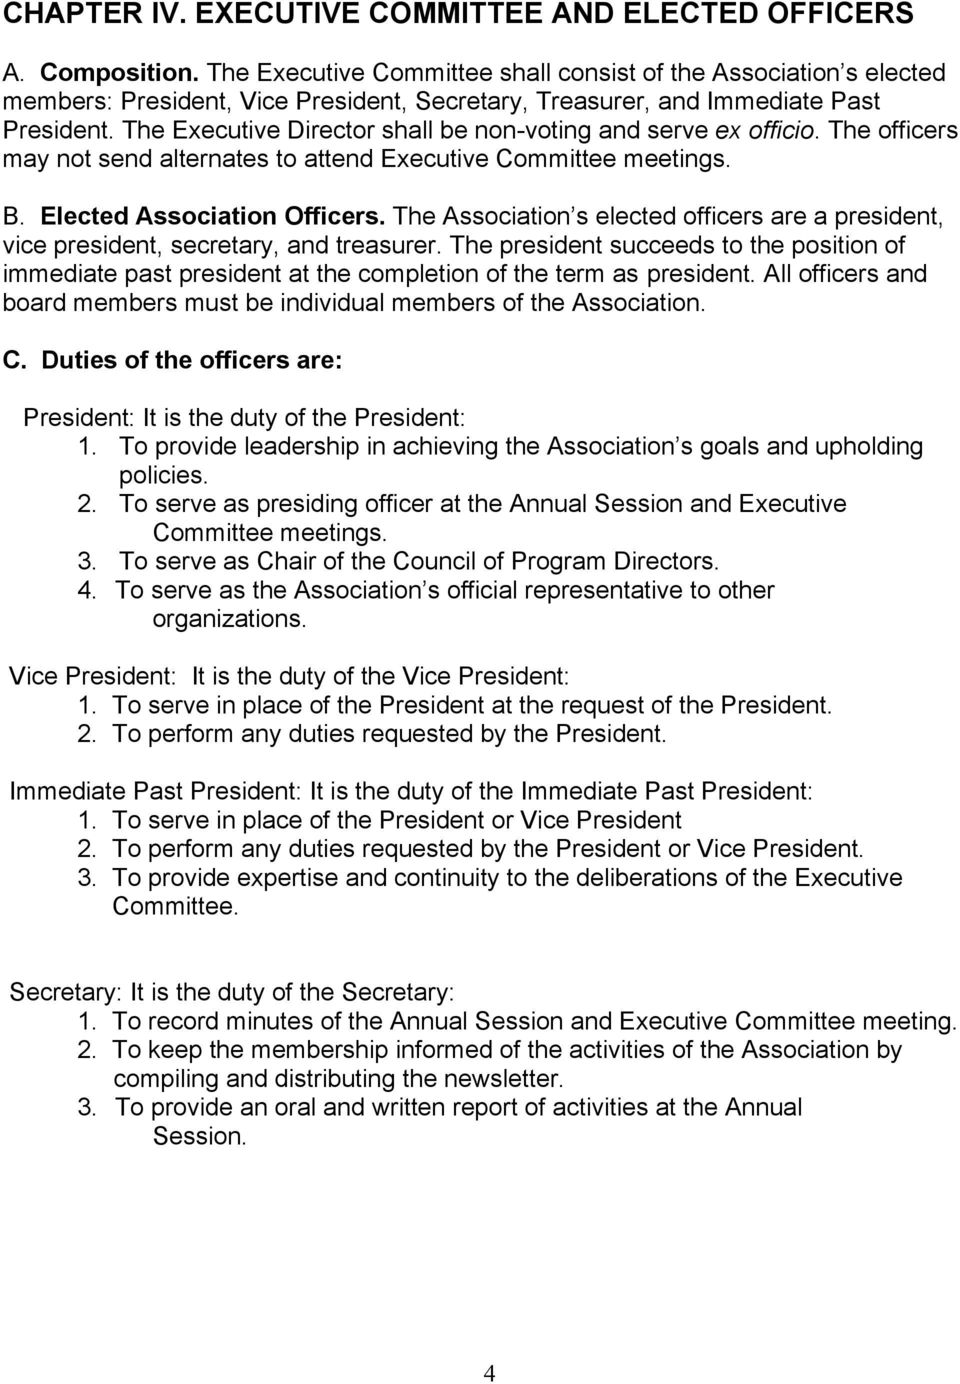 The Executive Director shall be non-voting and serve ex officio. The officers may not send alternates to attend Executive Committee meetings. B. Elected Association Officers.